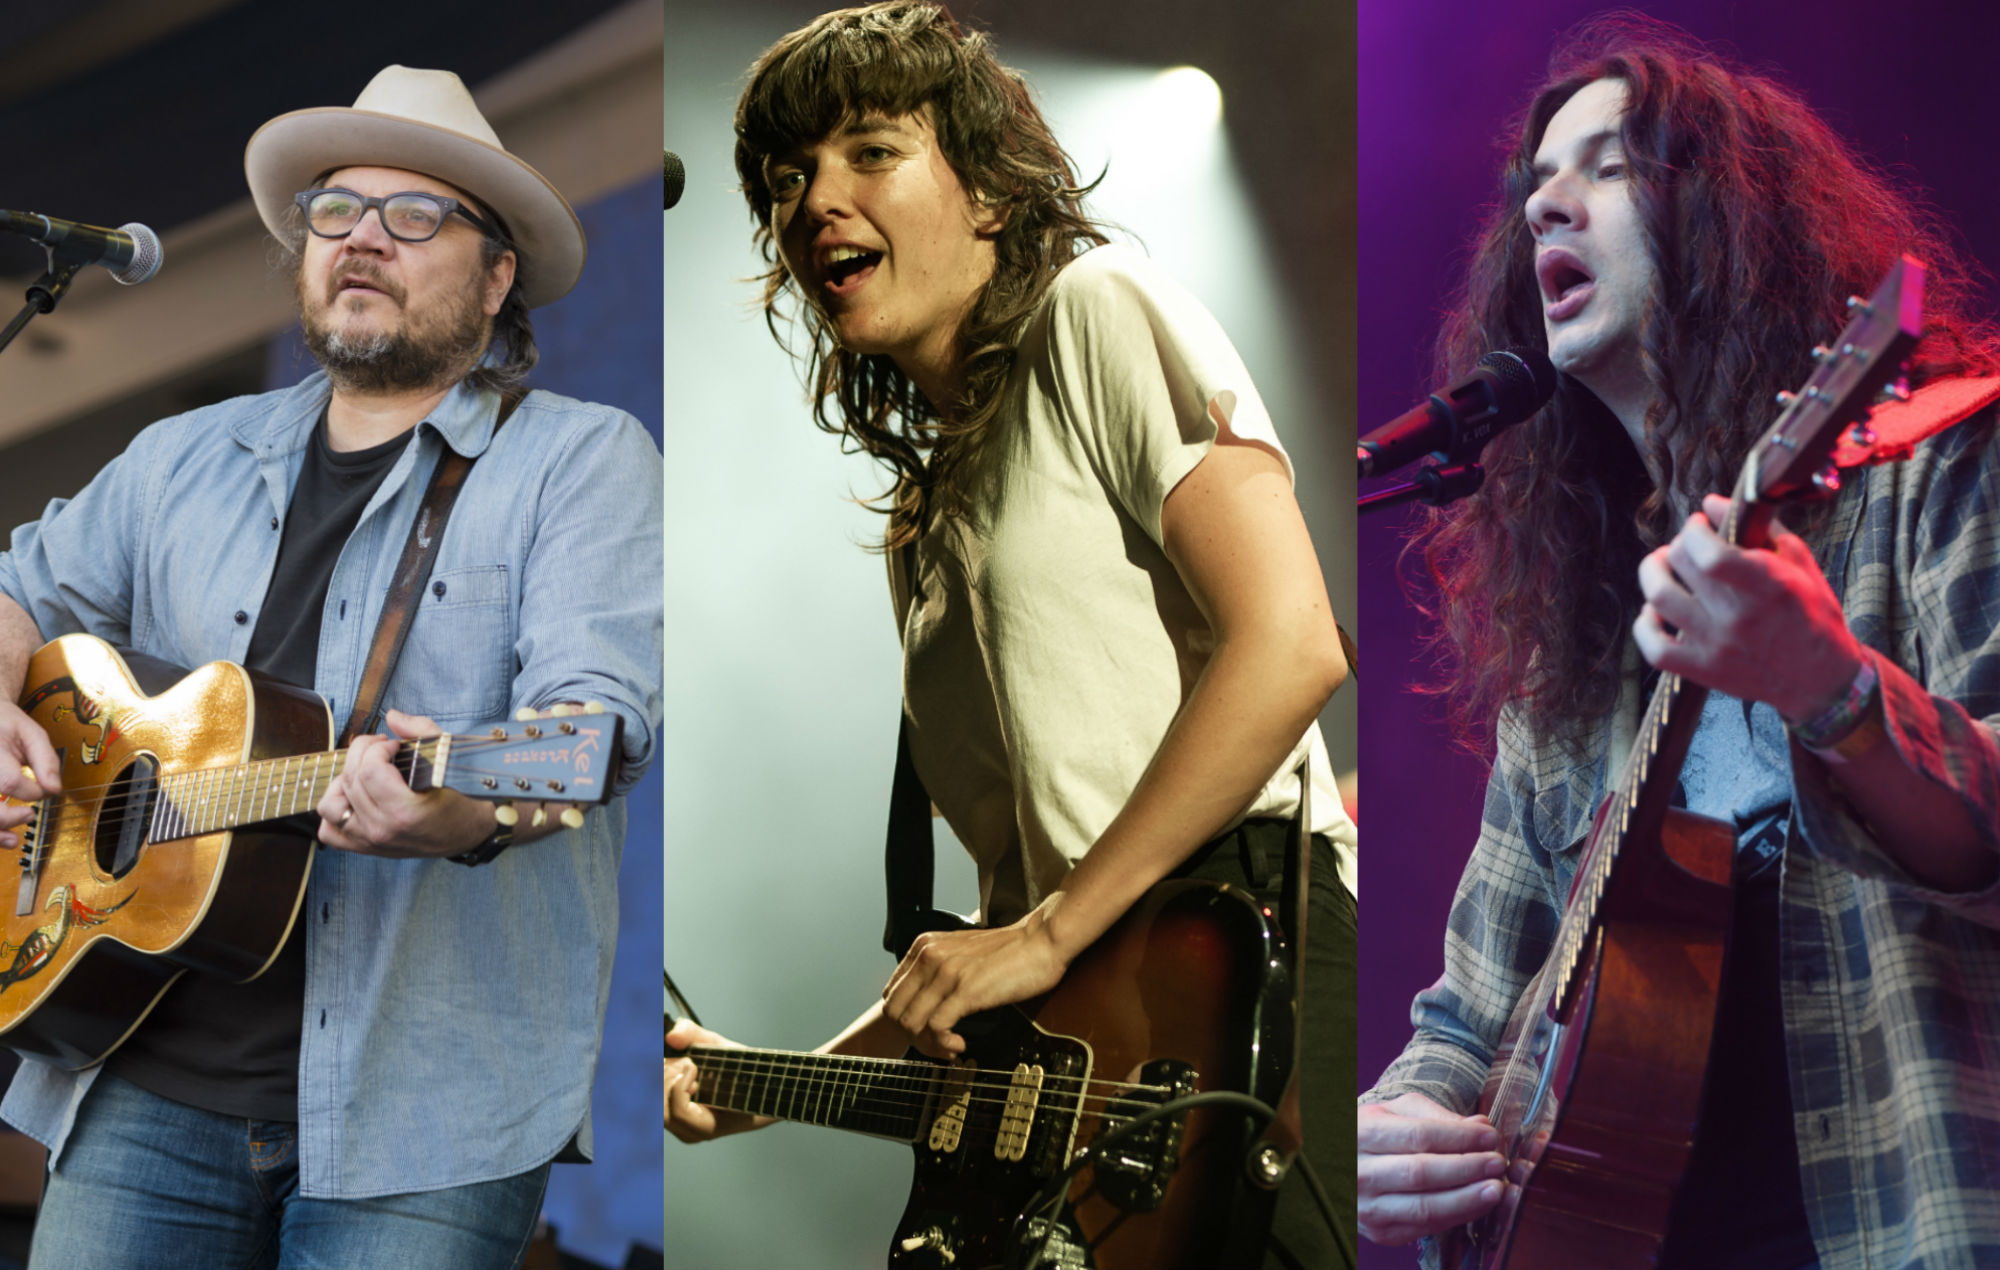 Wilco songs covered by Kurt Vile, Courtney Barnett, Low, Cate Le Bon and others for new album | NME